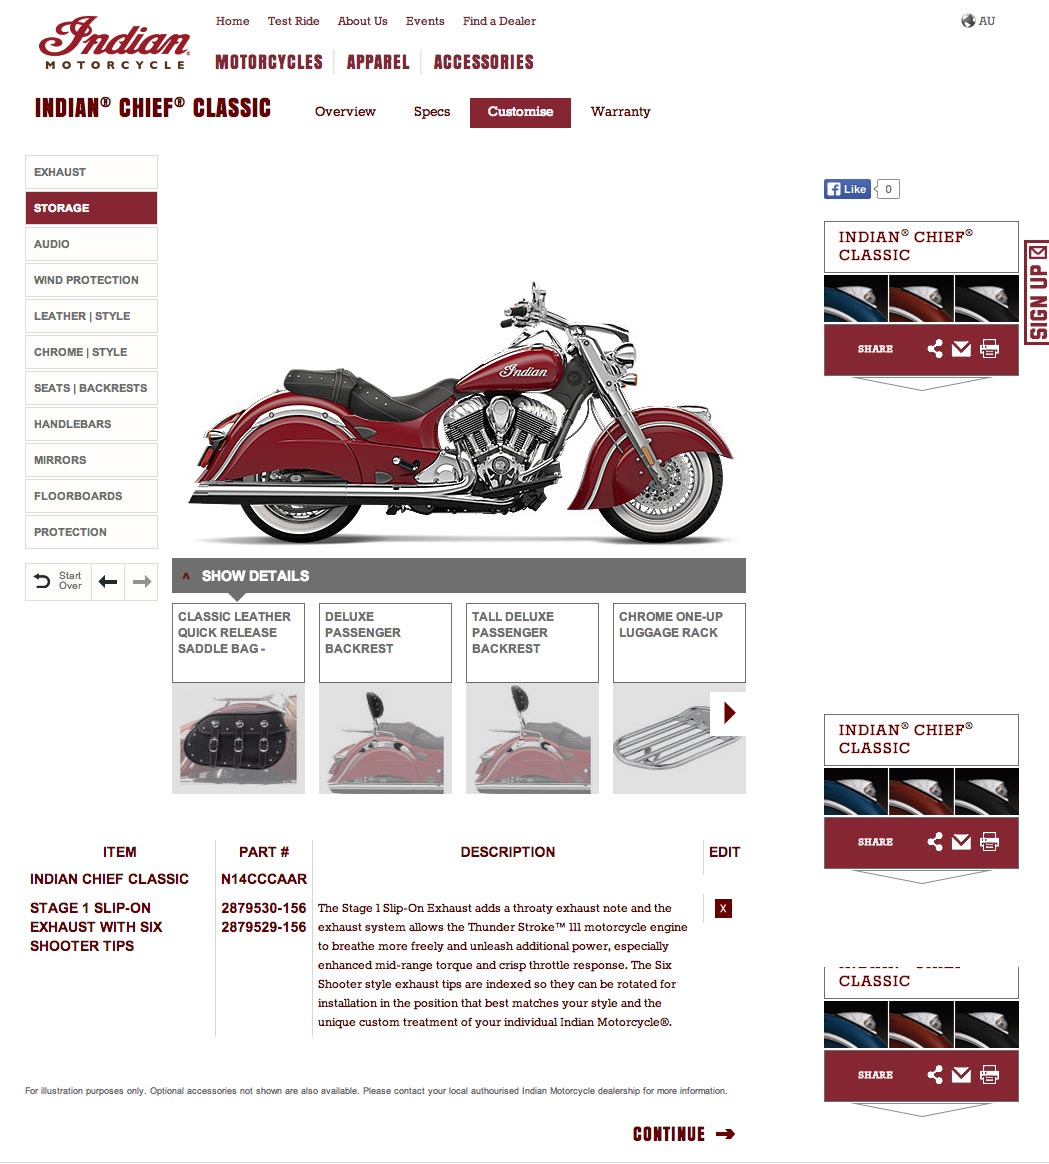 Visit indianmotorcycle.com.au to customise your Indian Chief motorcycle.